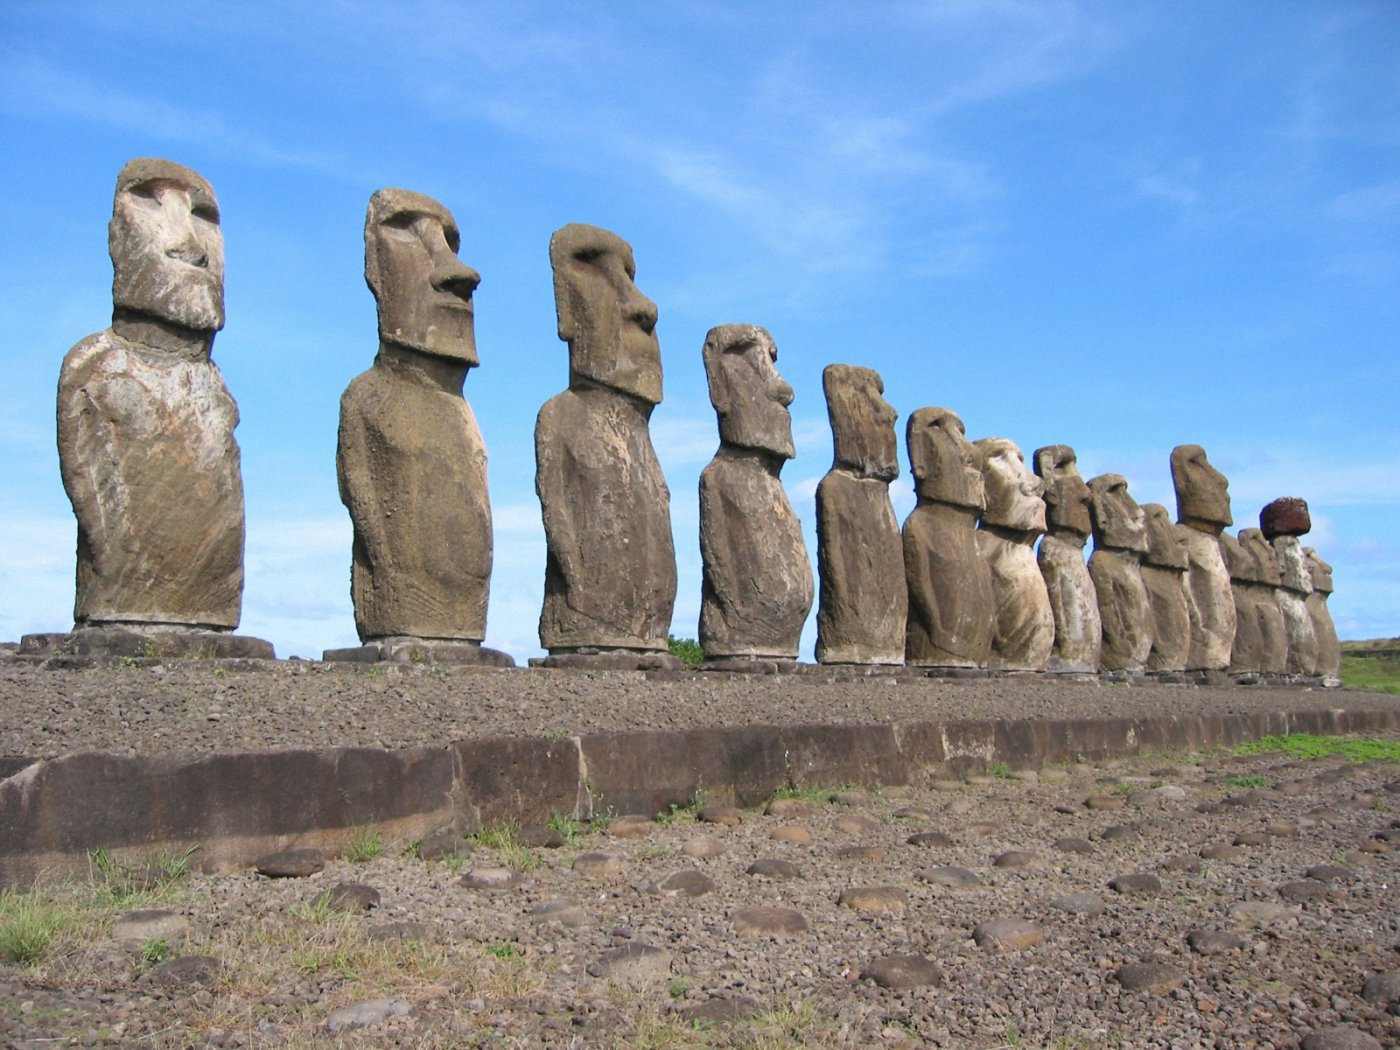 Easter Island 1400x1050 WallpapersEaster Island 1400x1050 Wallpapers 1400x1050